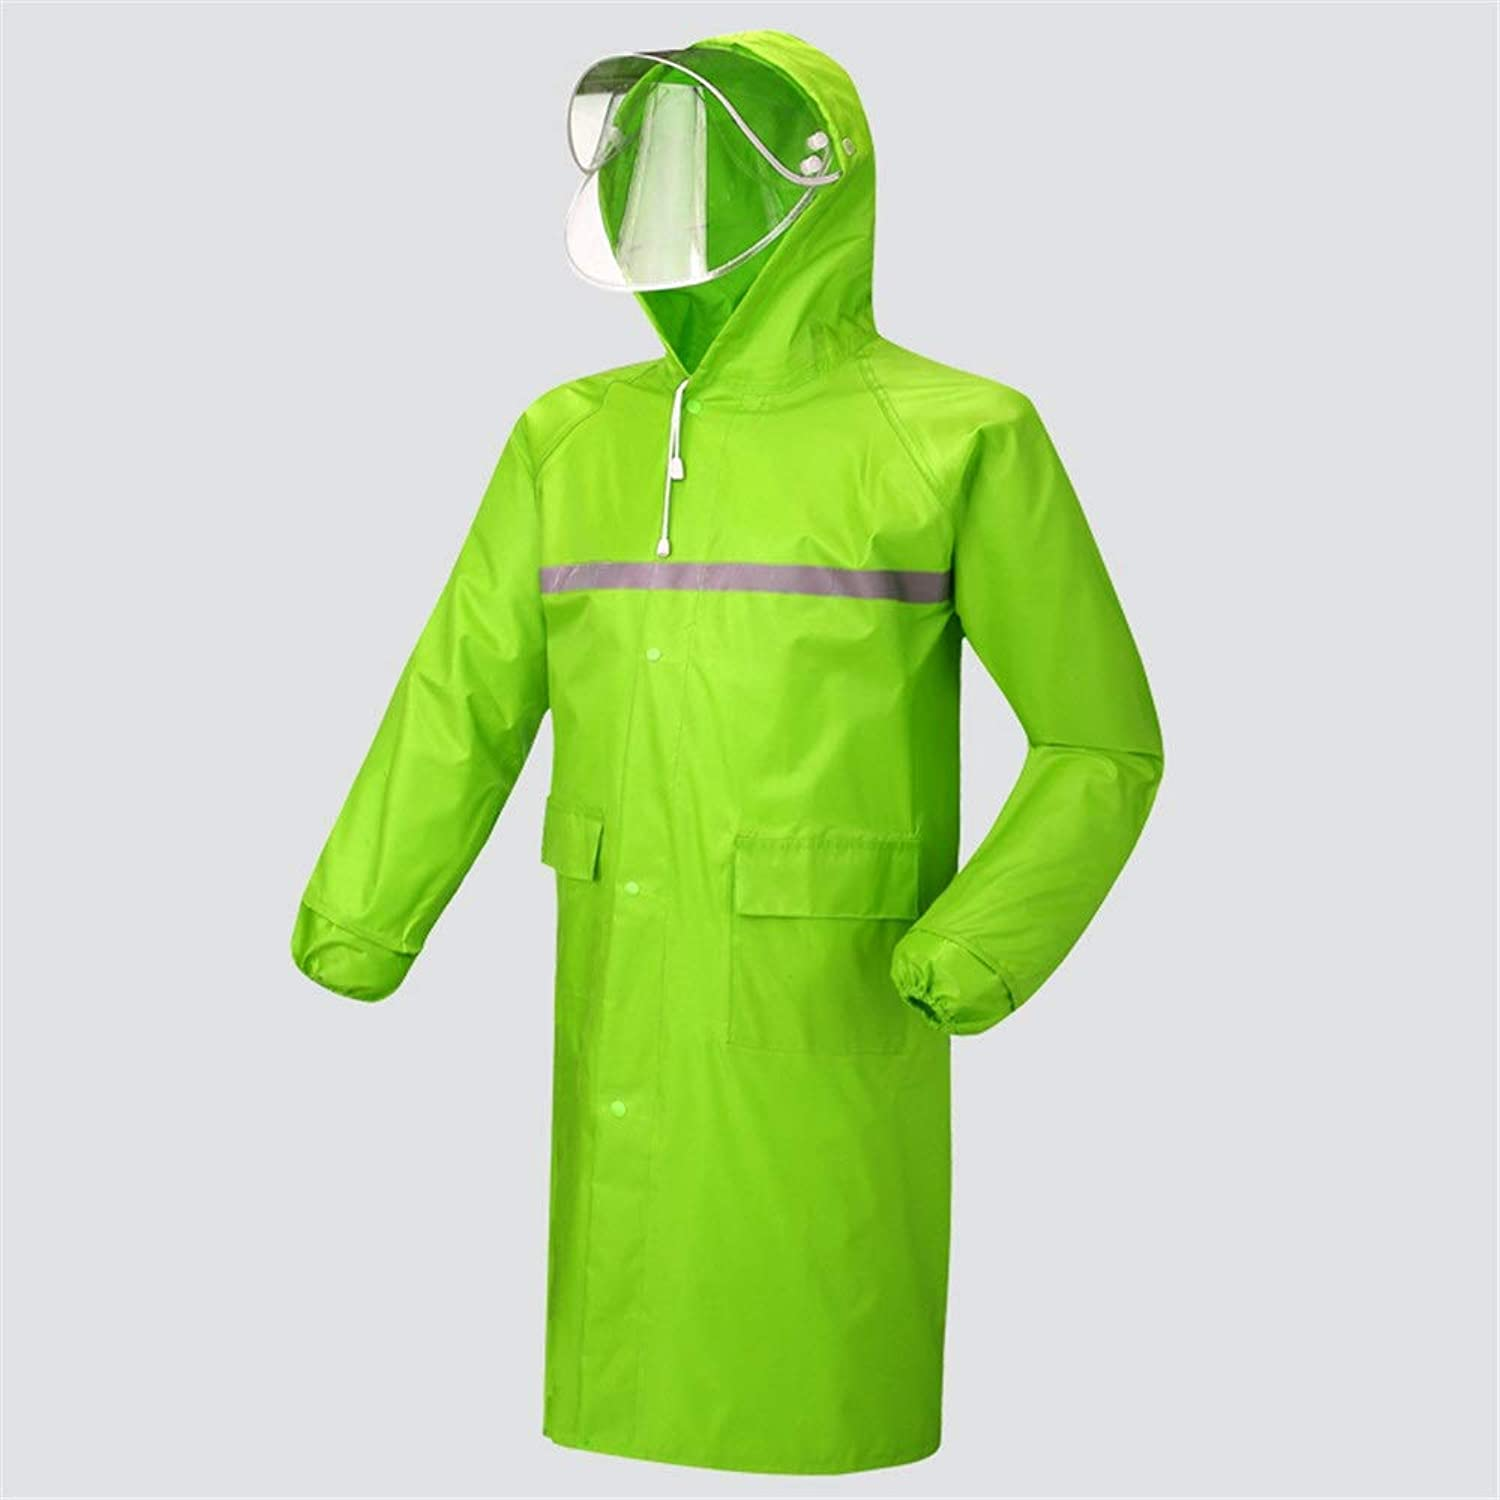 LJGG Raincoat Long Section Raincoat Waterproof Male Female Adult Hiking Breathable Poncho (color   Green, Size   XXL)